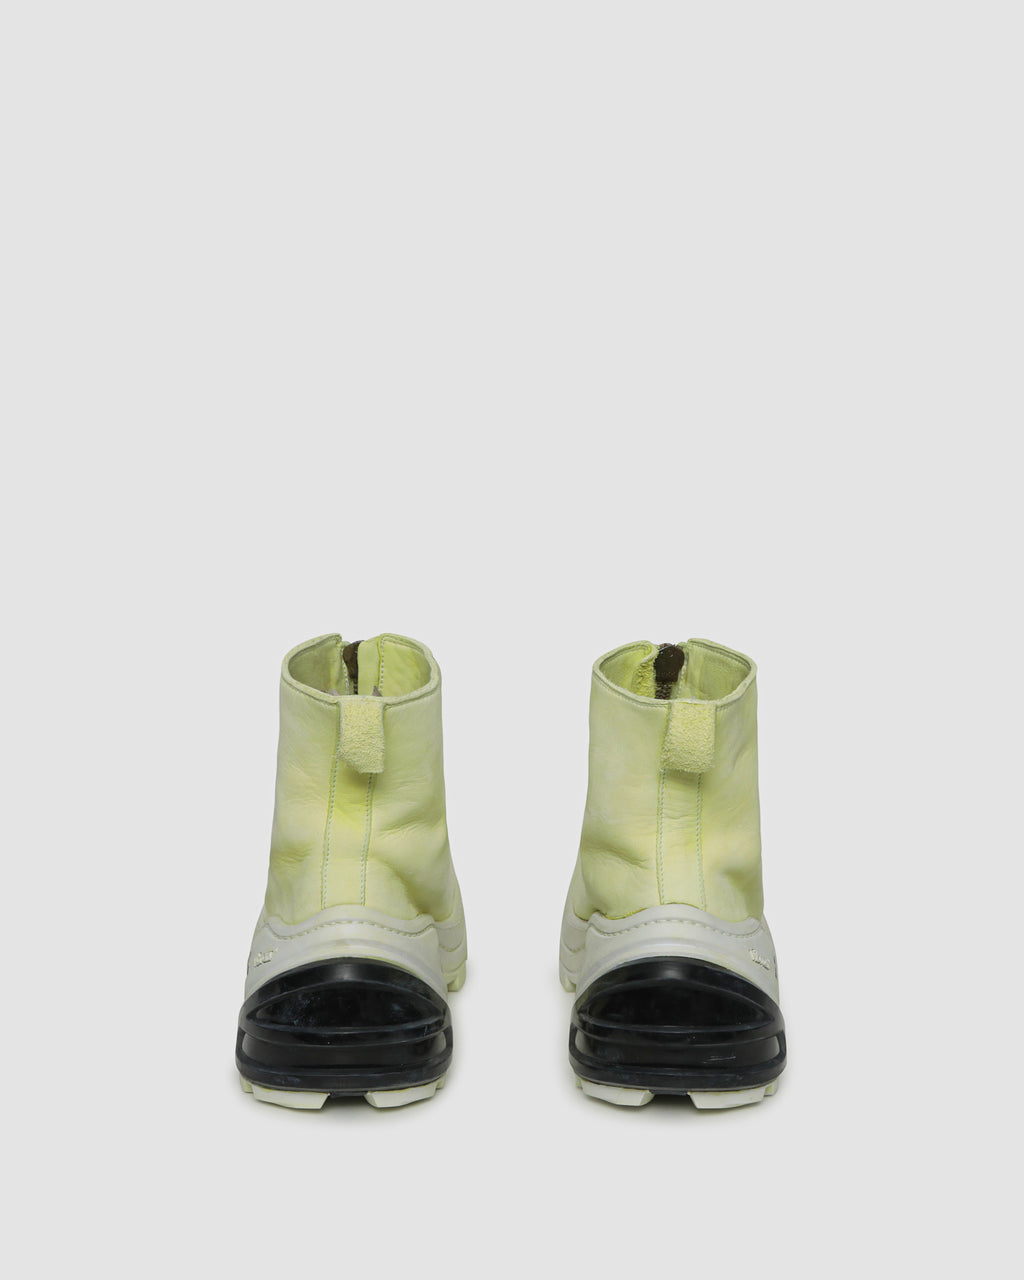 1017 ALYX 9SM | GUIDI ALYX FRONT ZIP BOOT WITH VIBRAM SOLE | Shoe | Google Shopping, Guidi, Man, S20, Shoes, Woman, Yellow